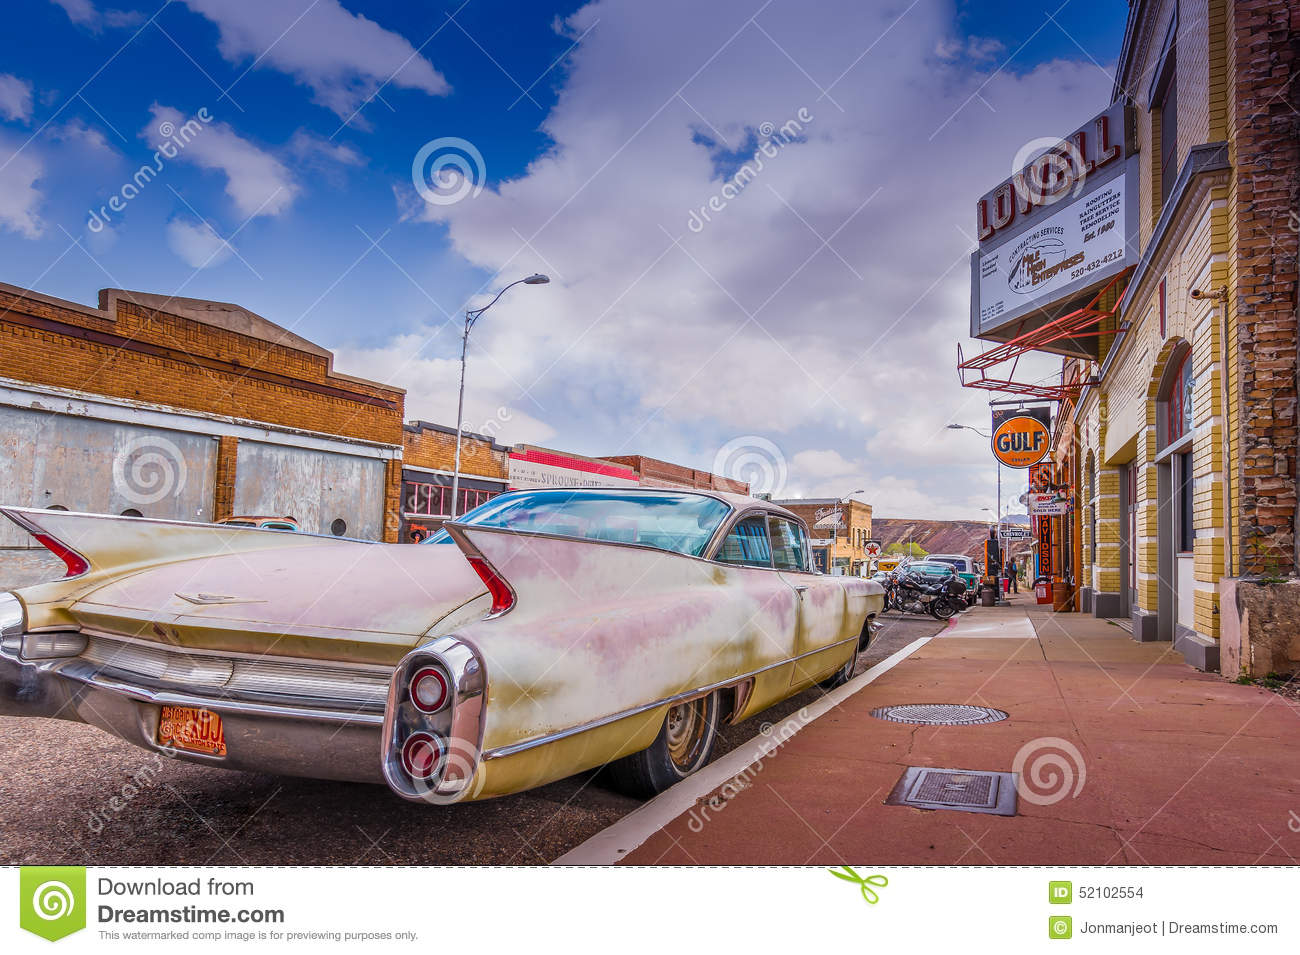 Old Classic Cars And Trucks Stock Photo 52102554 - Megapixl